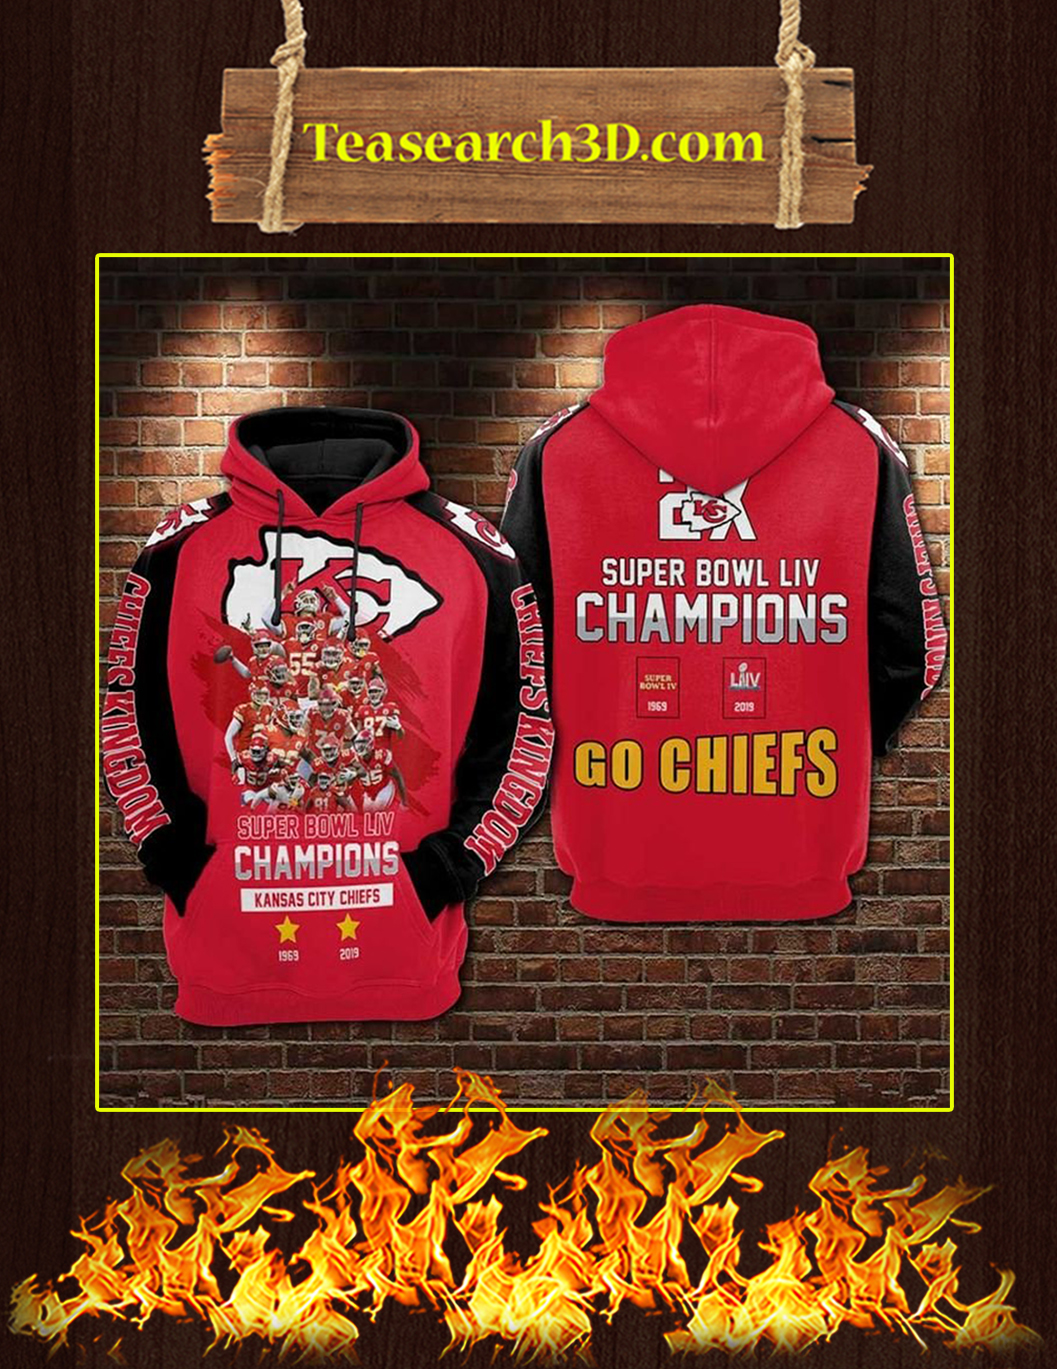 Super Bowl LIV Champions Go Chiefs 3D Full Printing Hoodie Pic 1